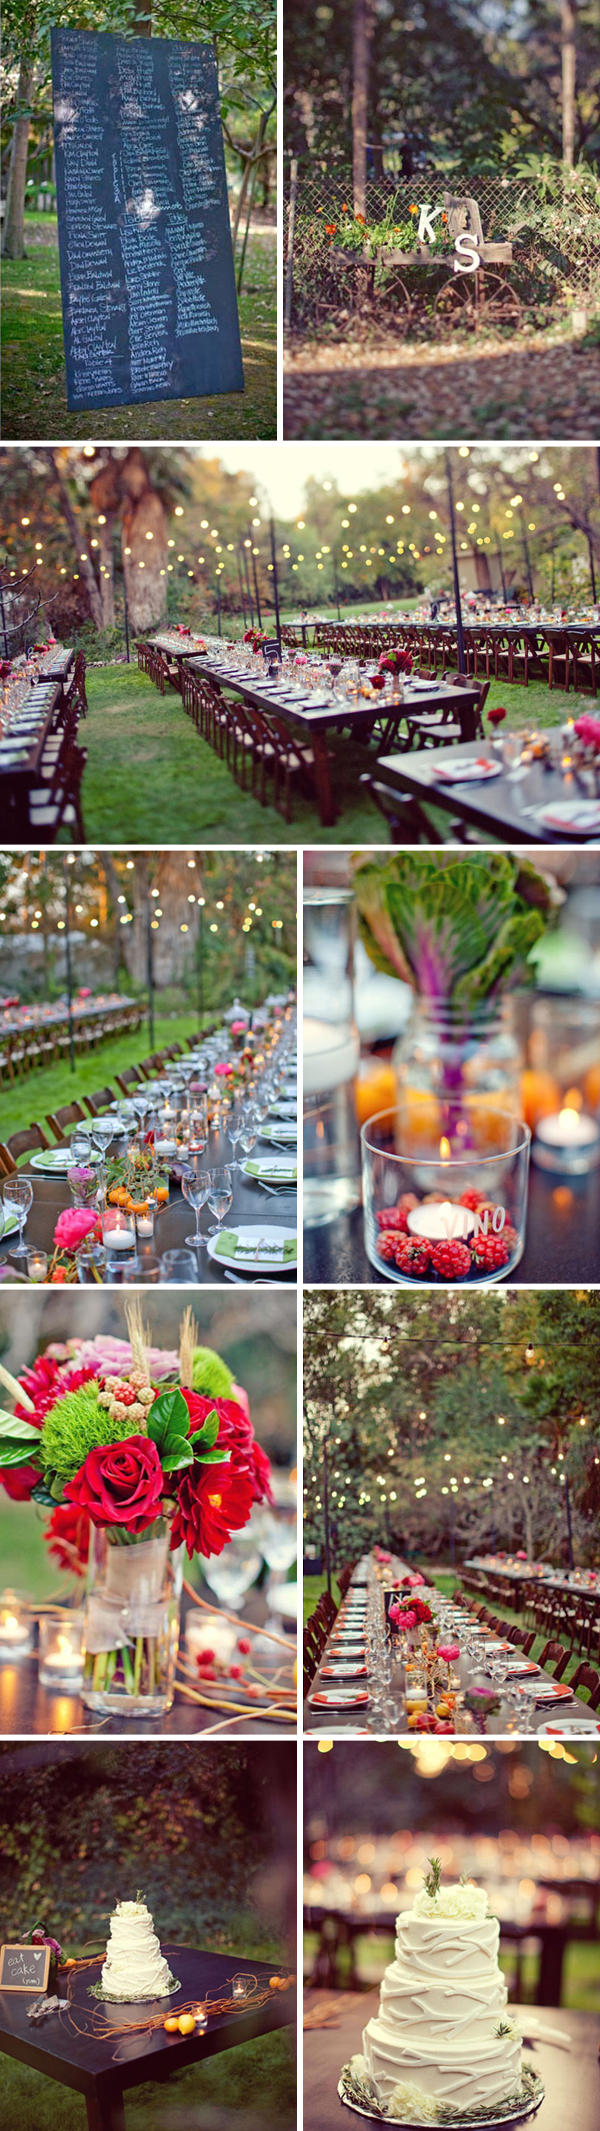 Wedding Reception Trends